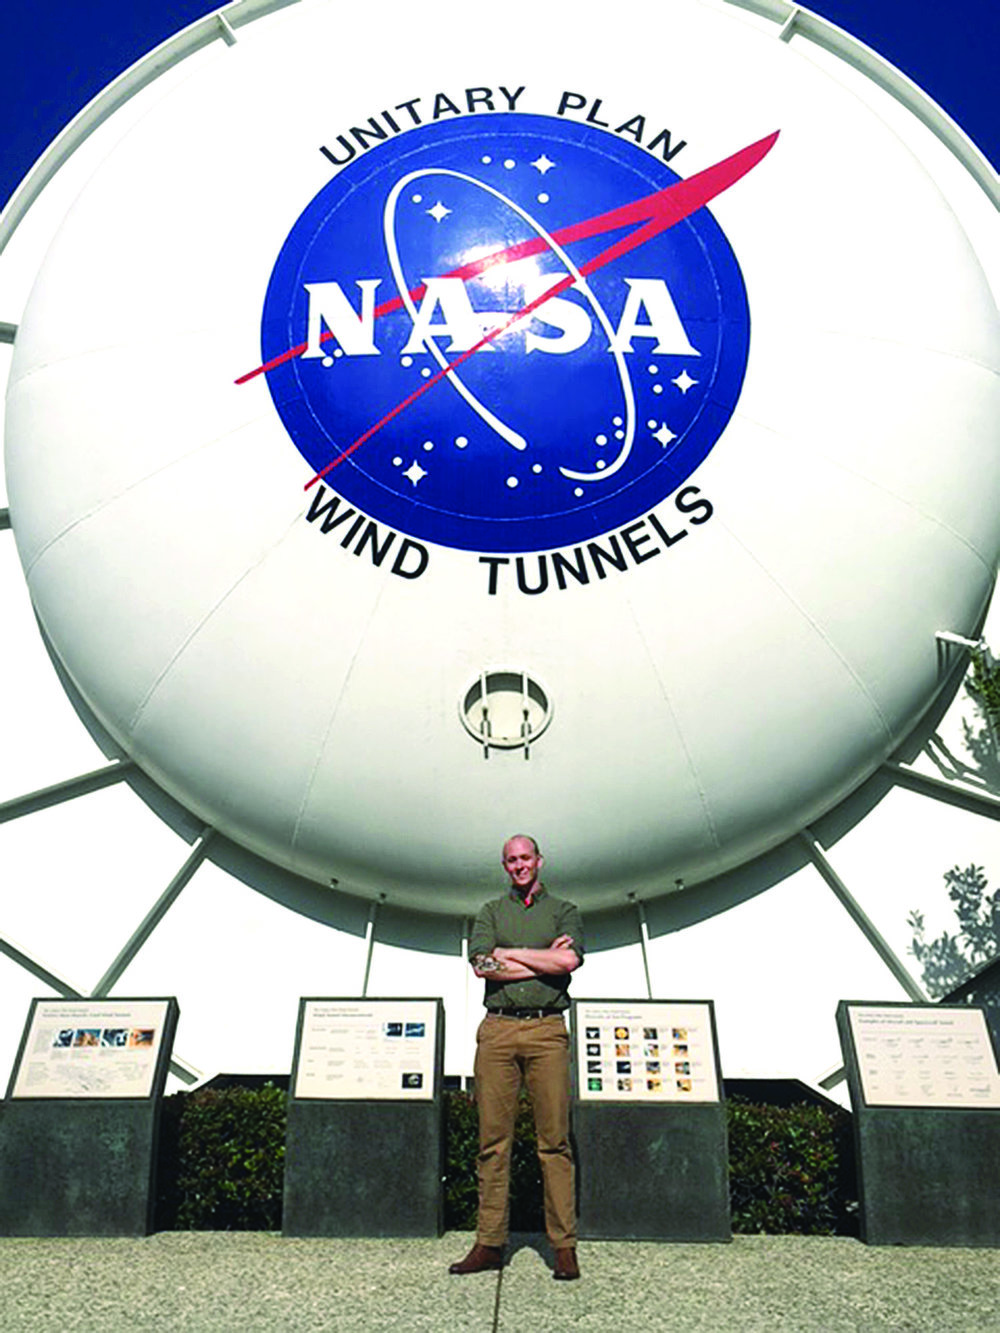 Through ROTC, Brad Foreman '18 interned with NASA this summer at the Ames Research Center in California.